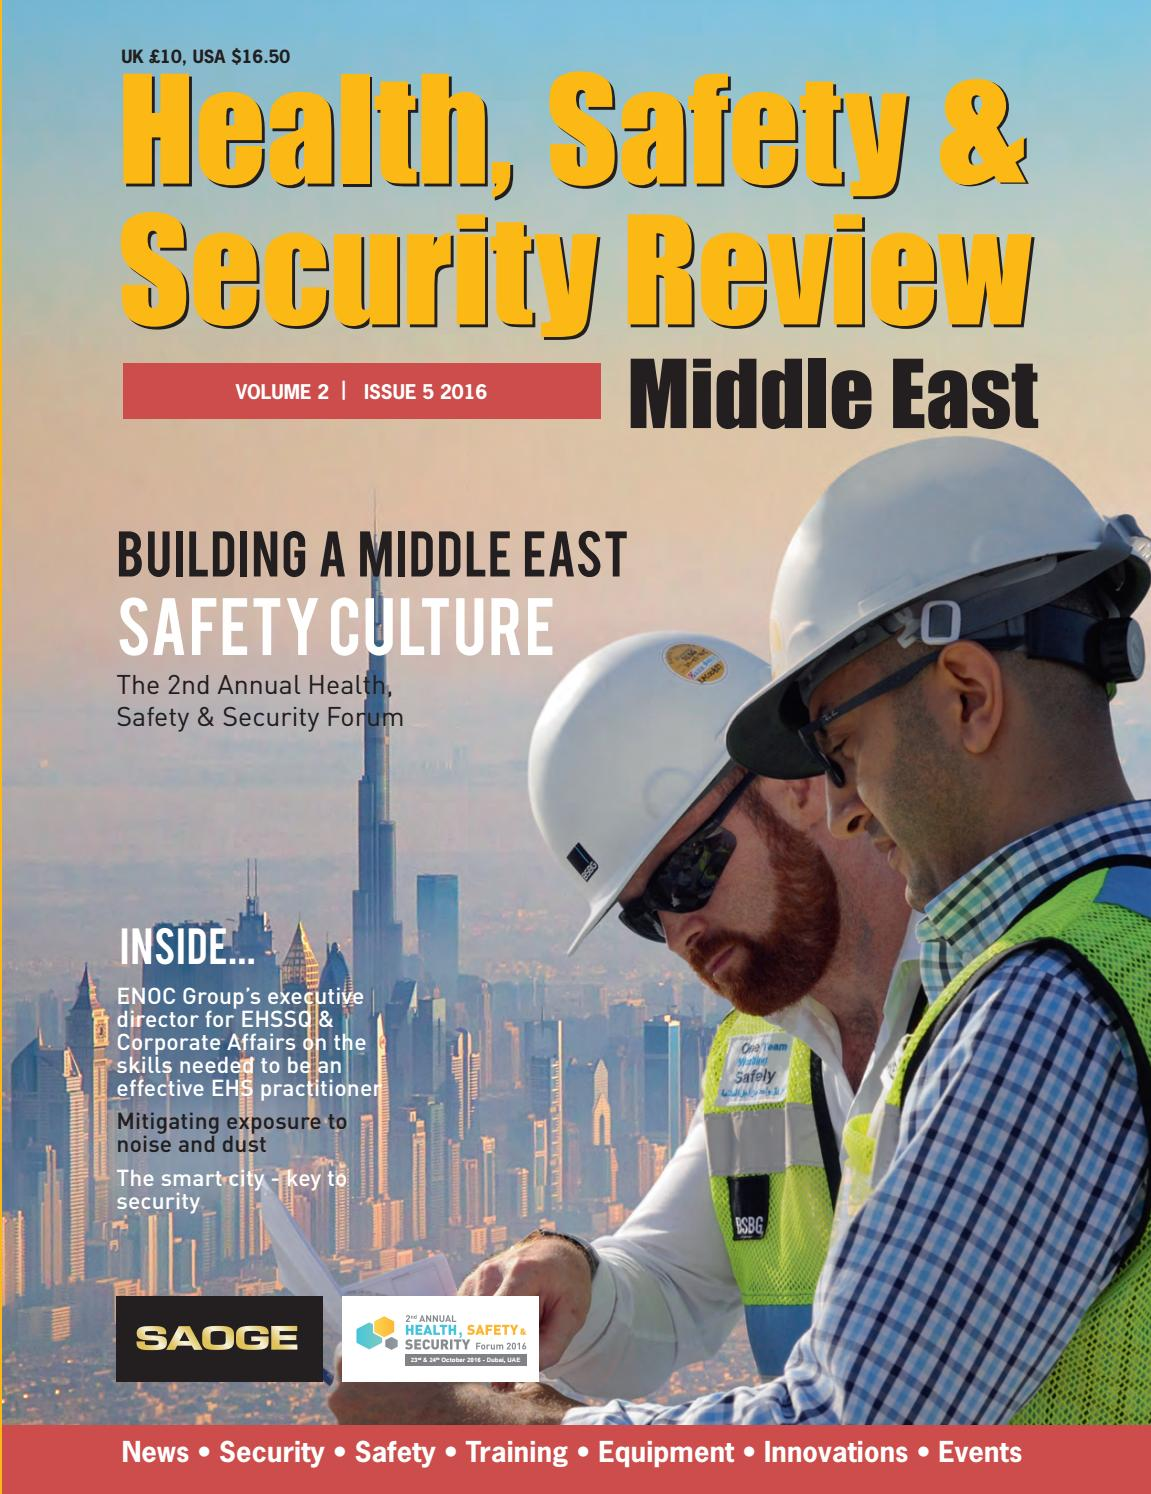 Health Safety & Security Review 5 2016 by Alain Charles